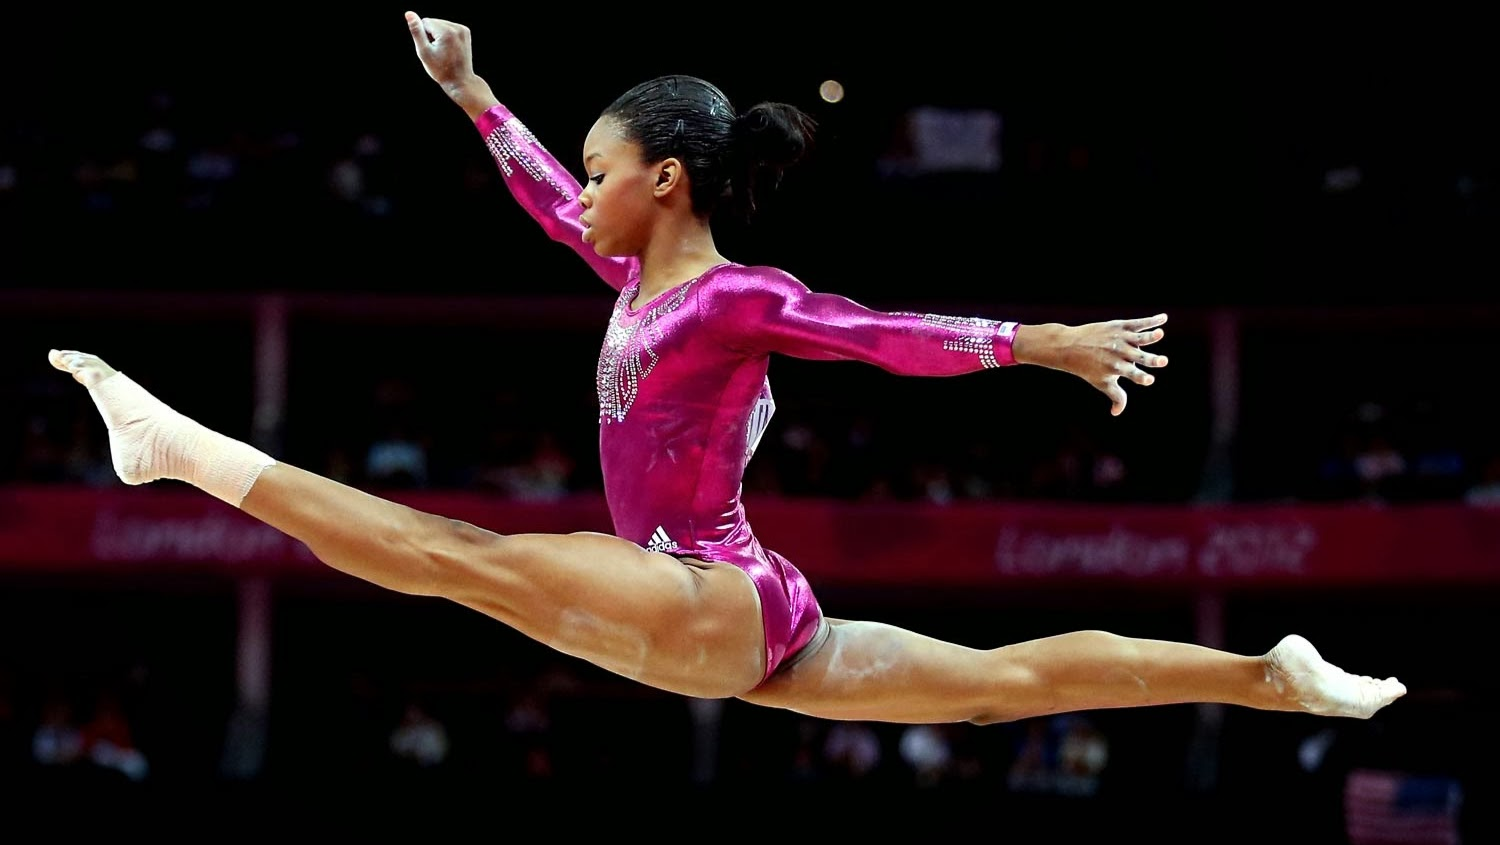 Gabby Douglas represents USA in gymnastics during the London Olympics 2012